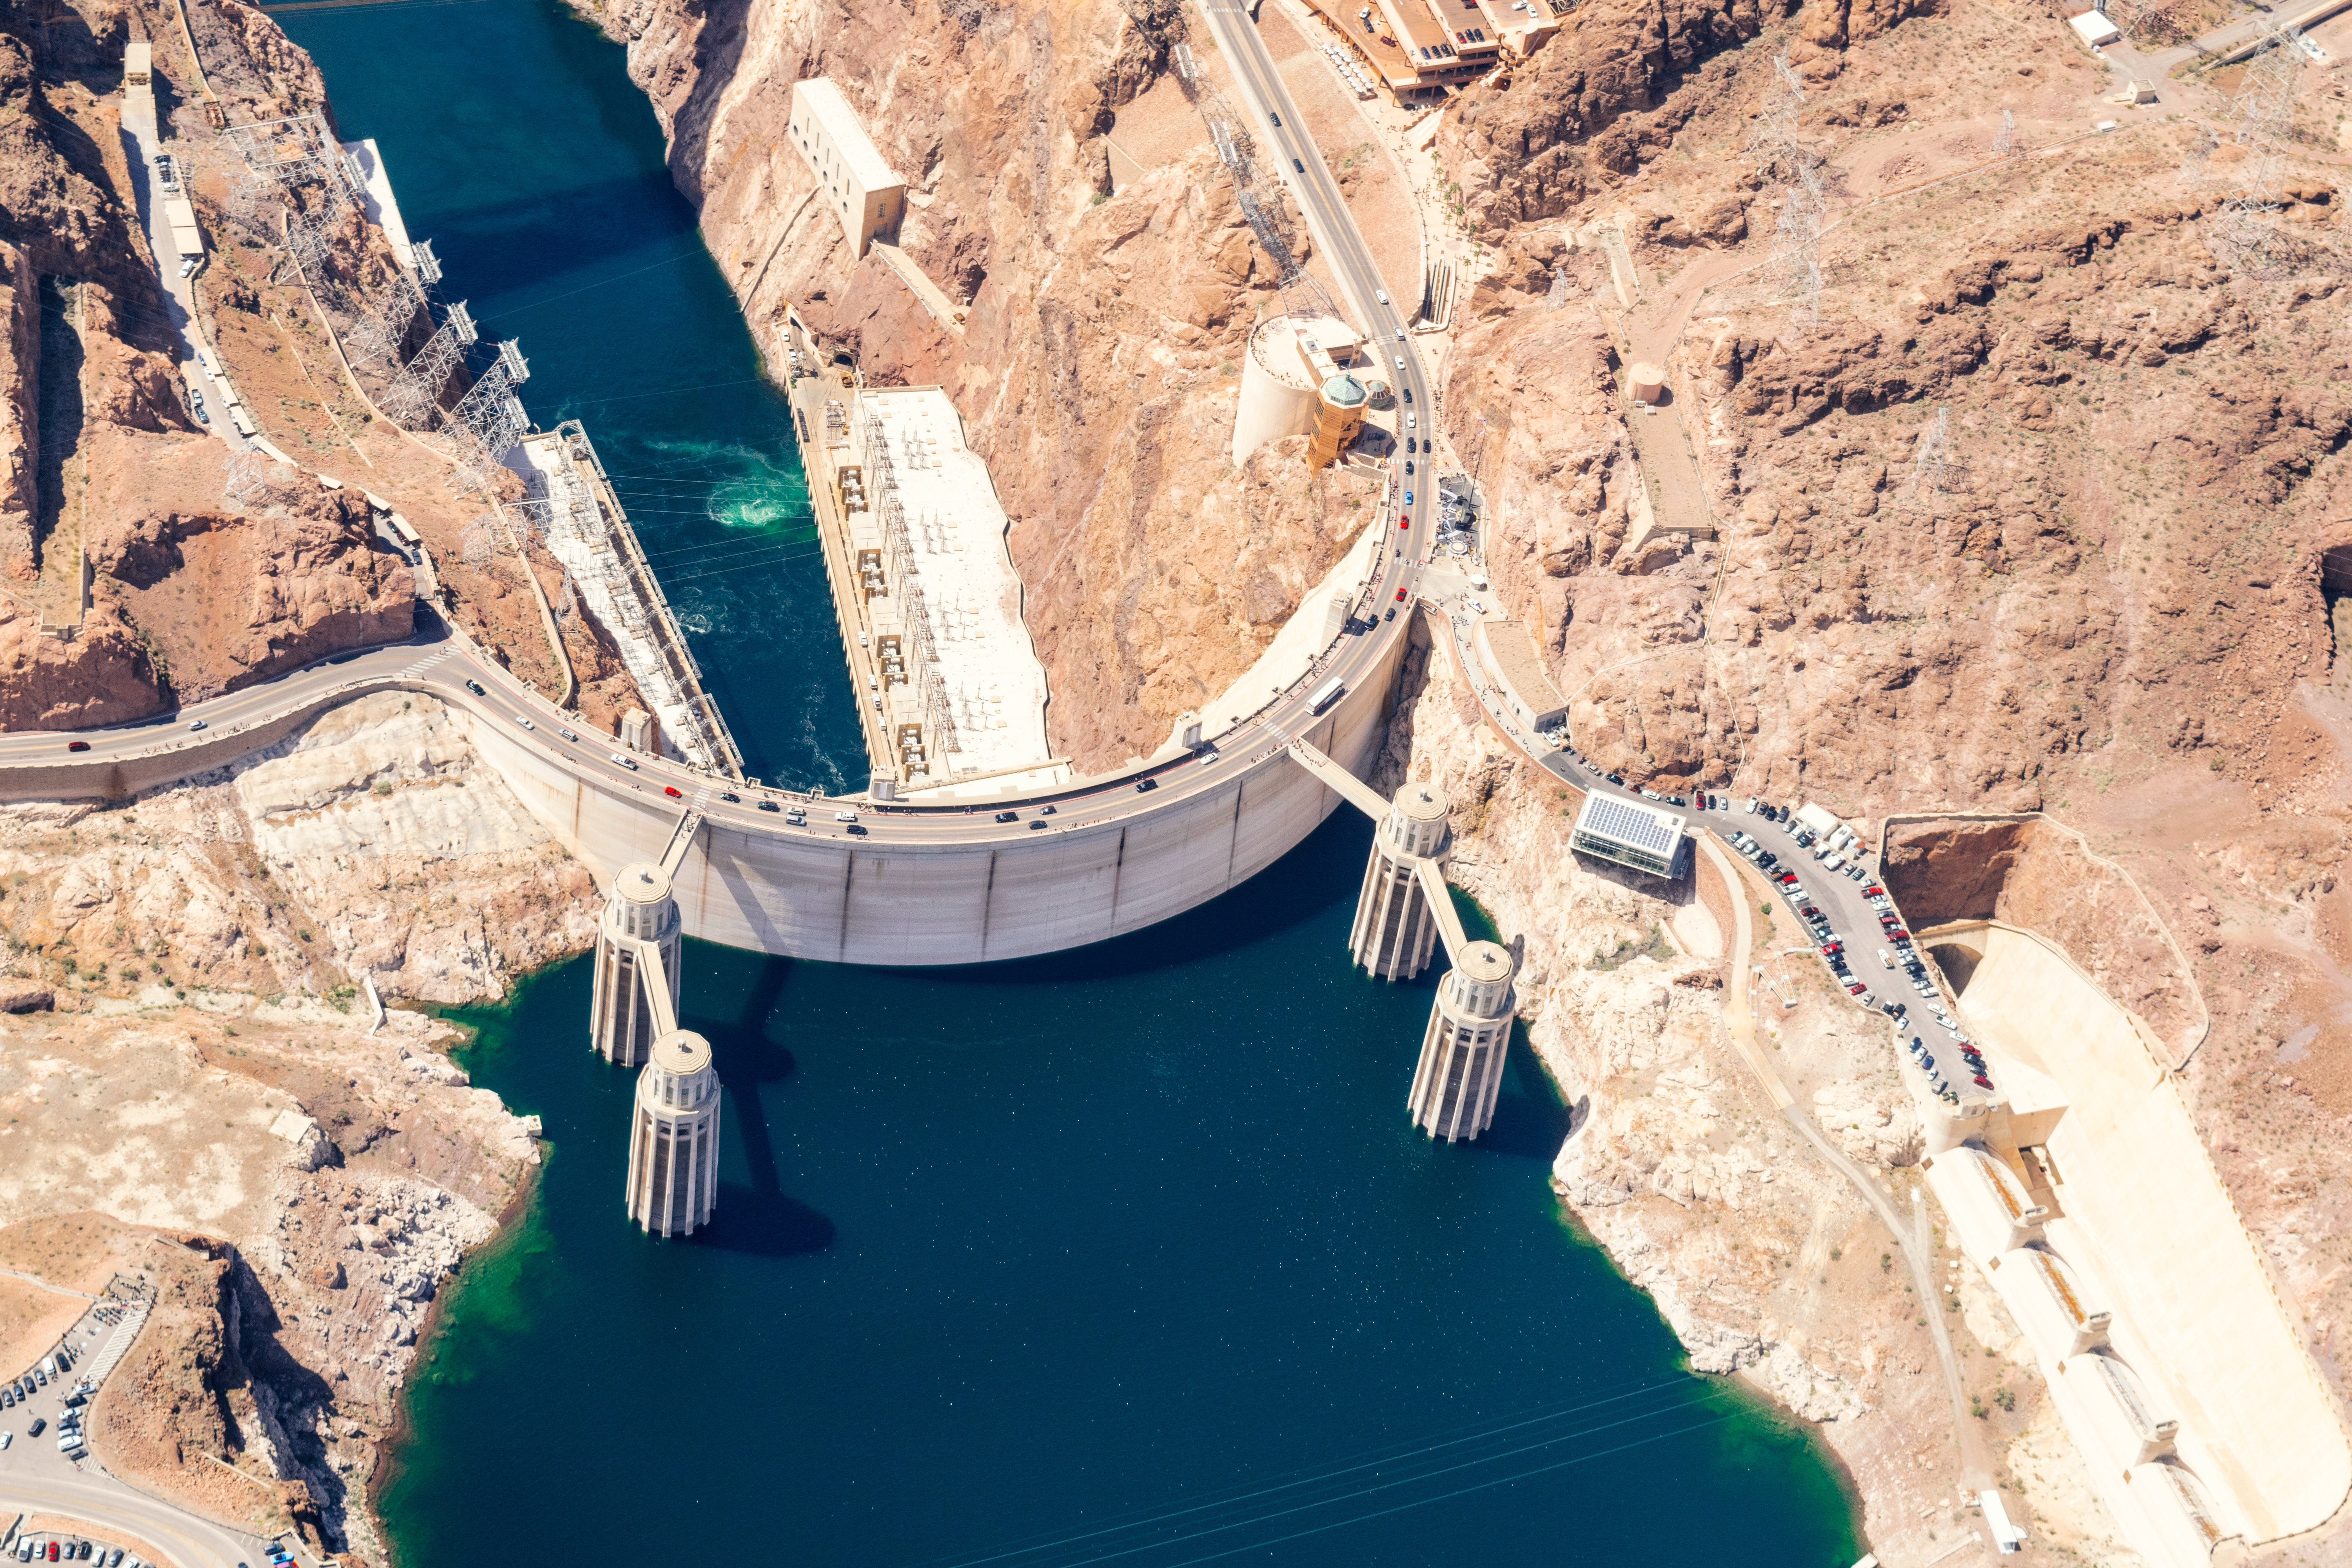 Arial view of the Hoover Dam with brown rock and desert on each side and blue-green water on both sides of the dam.